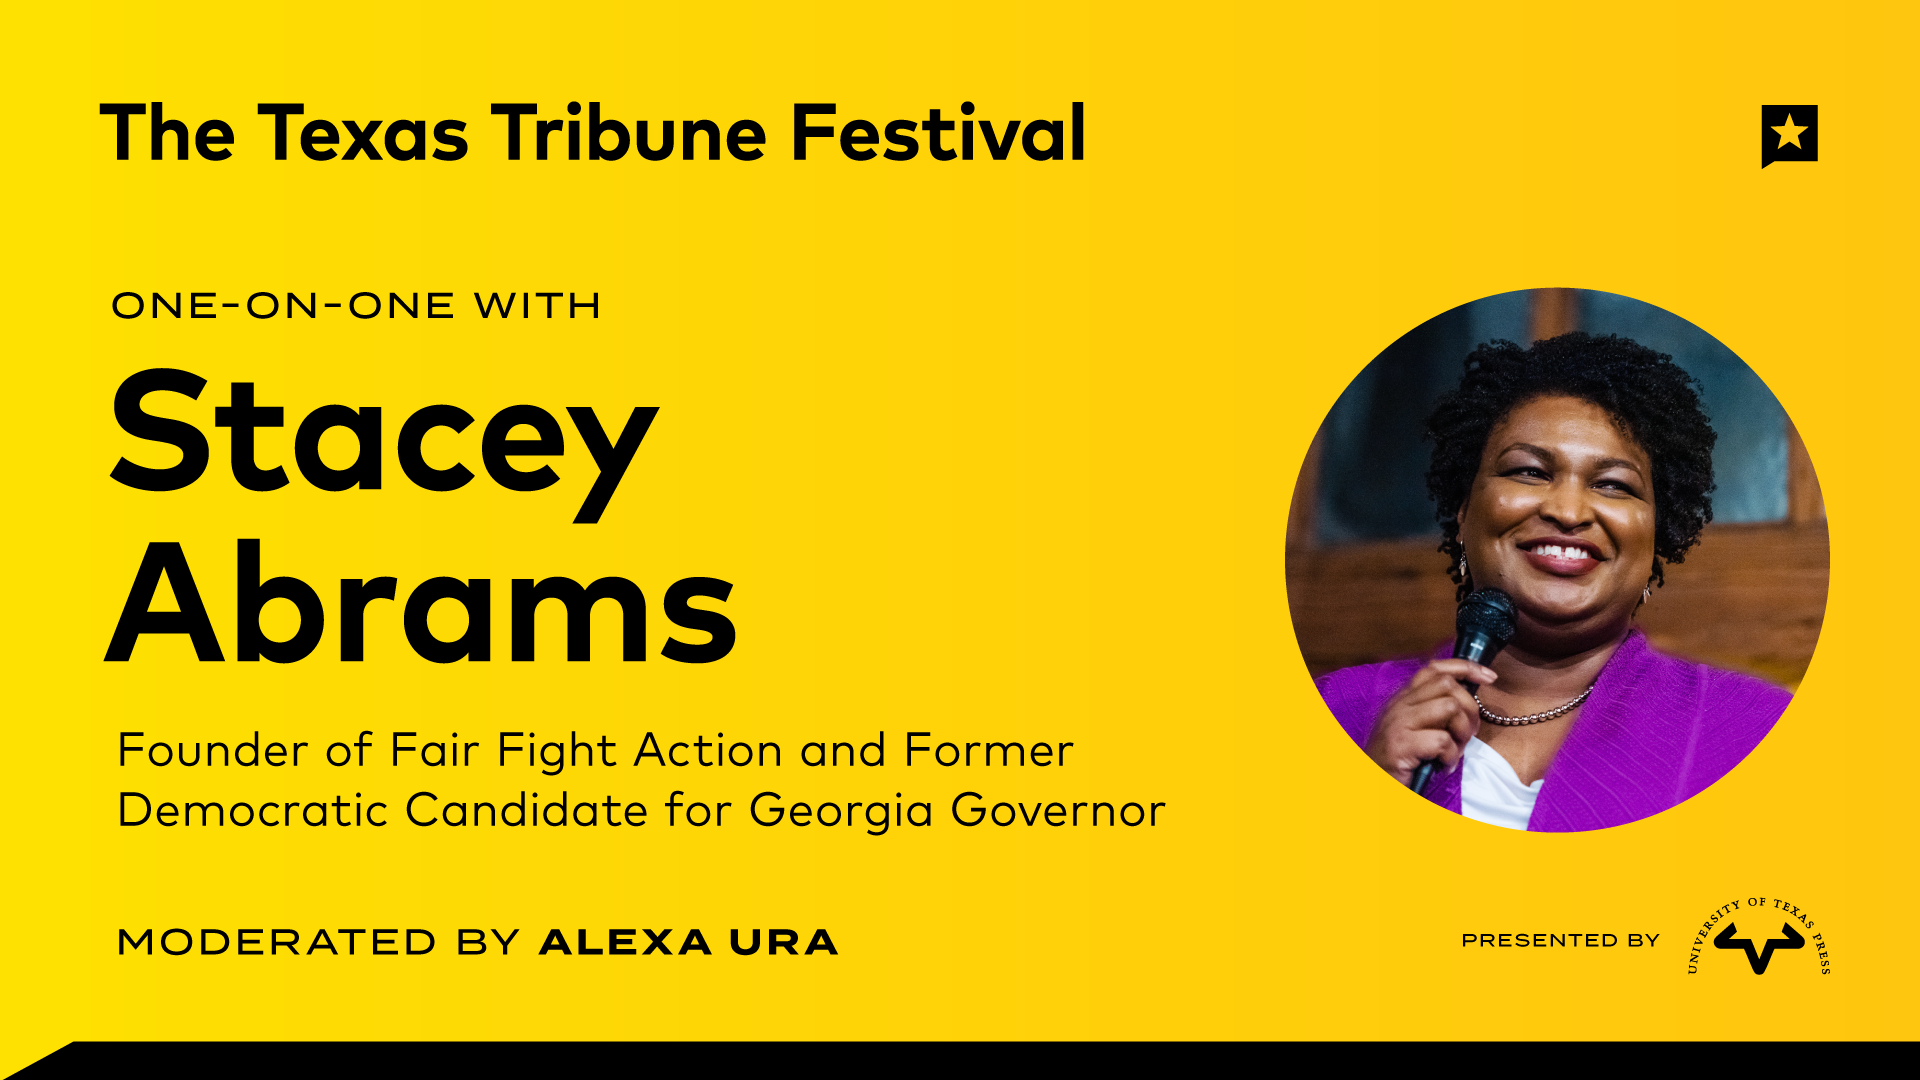 One-on-One with Stacey Abrams